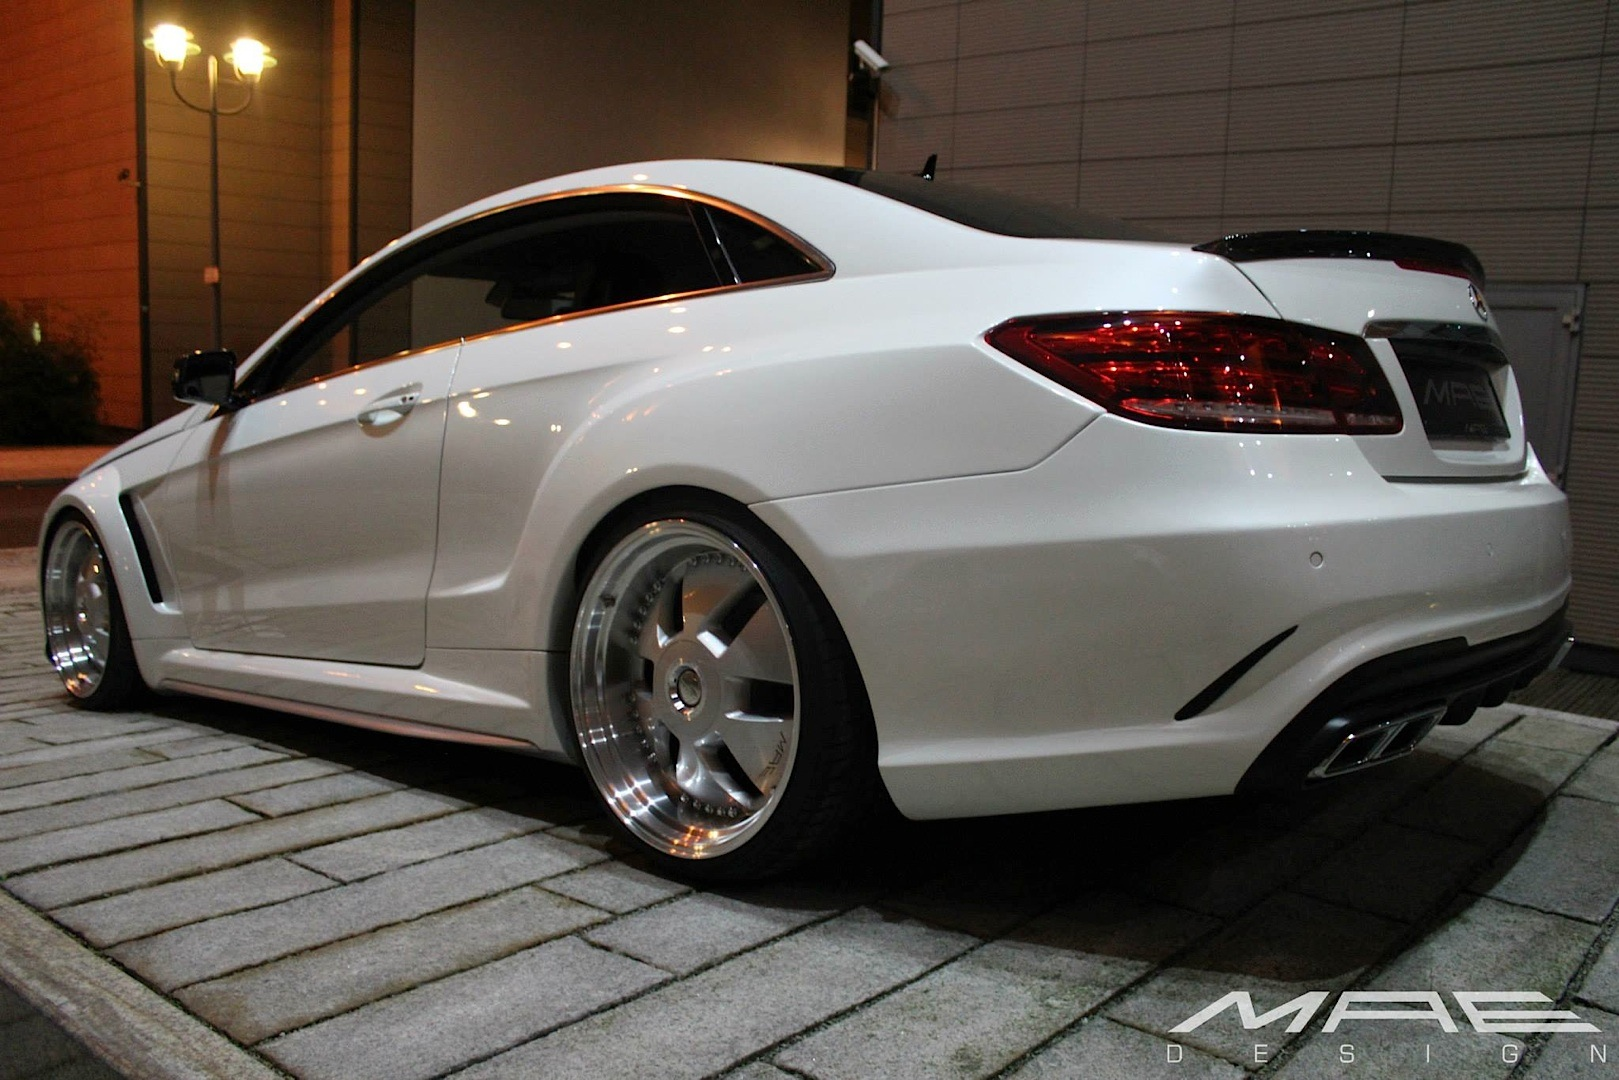 S Class Coupe >> E-Class Coupe Wide Bodykit by MAE is as Clean as a Whistle - autoevolution